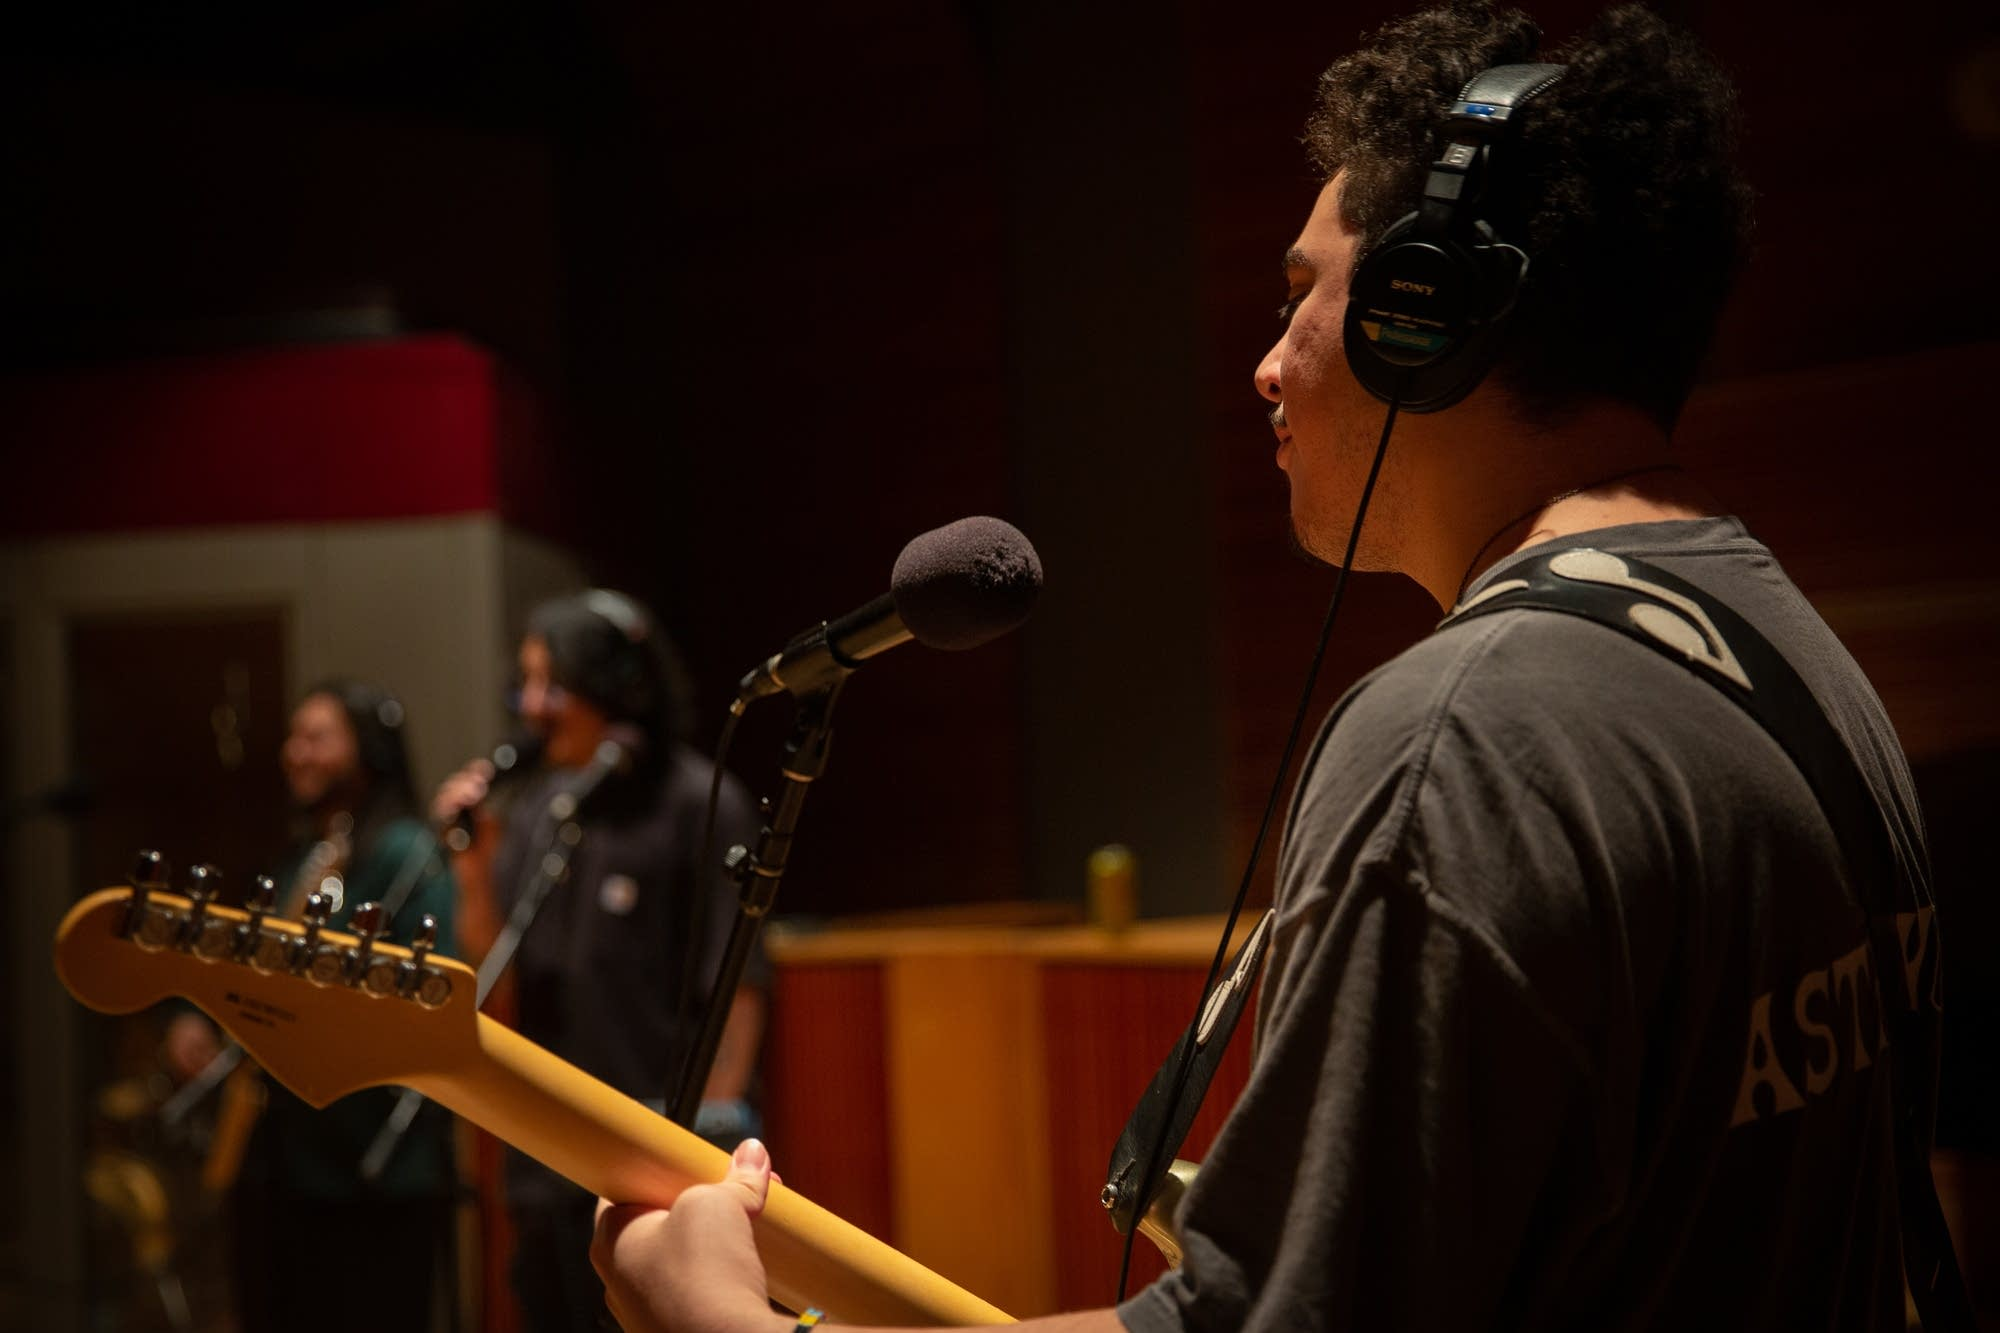 Cuco performs in The Current studio